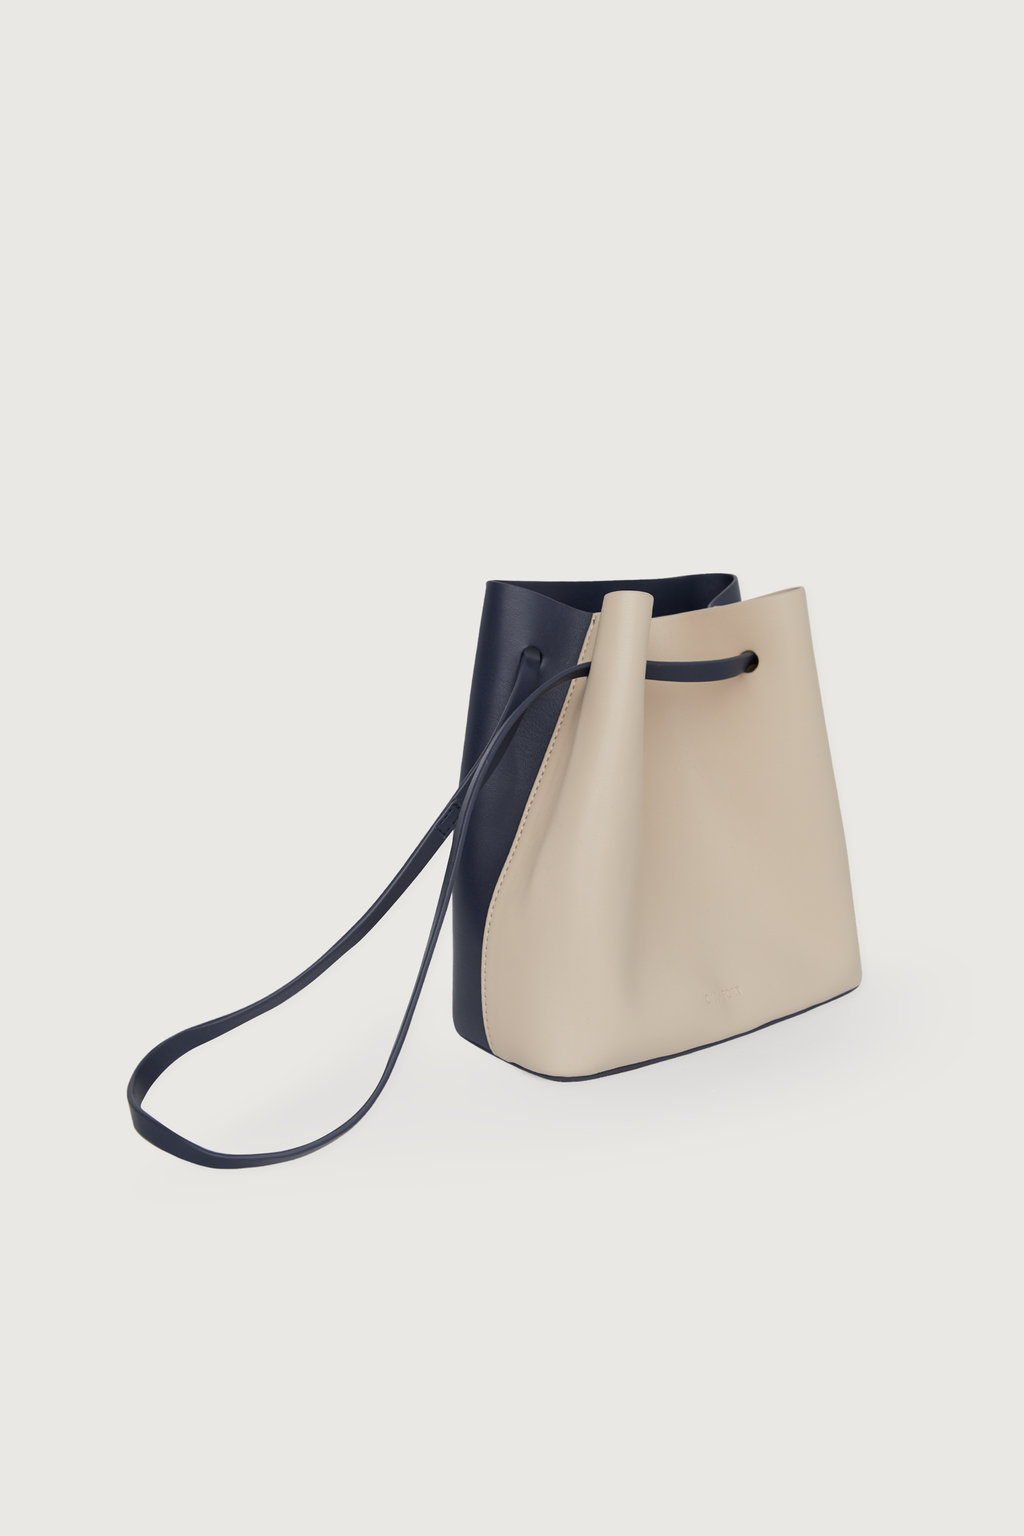 Bag 198320191 Navy Cream Mix 8